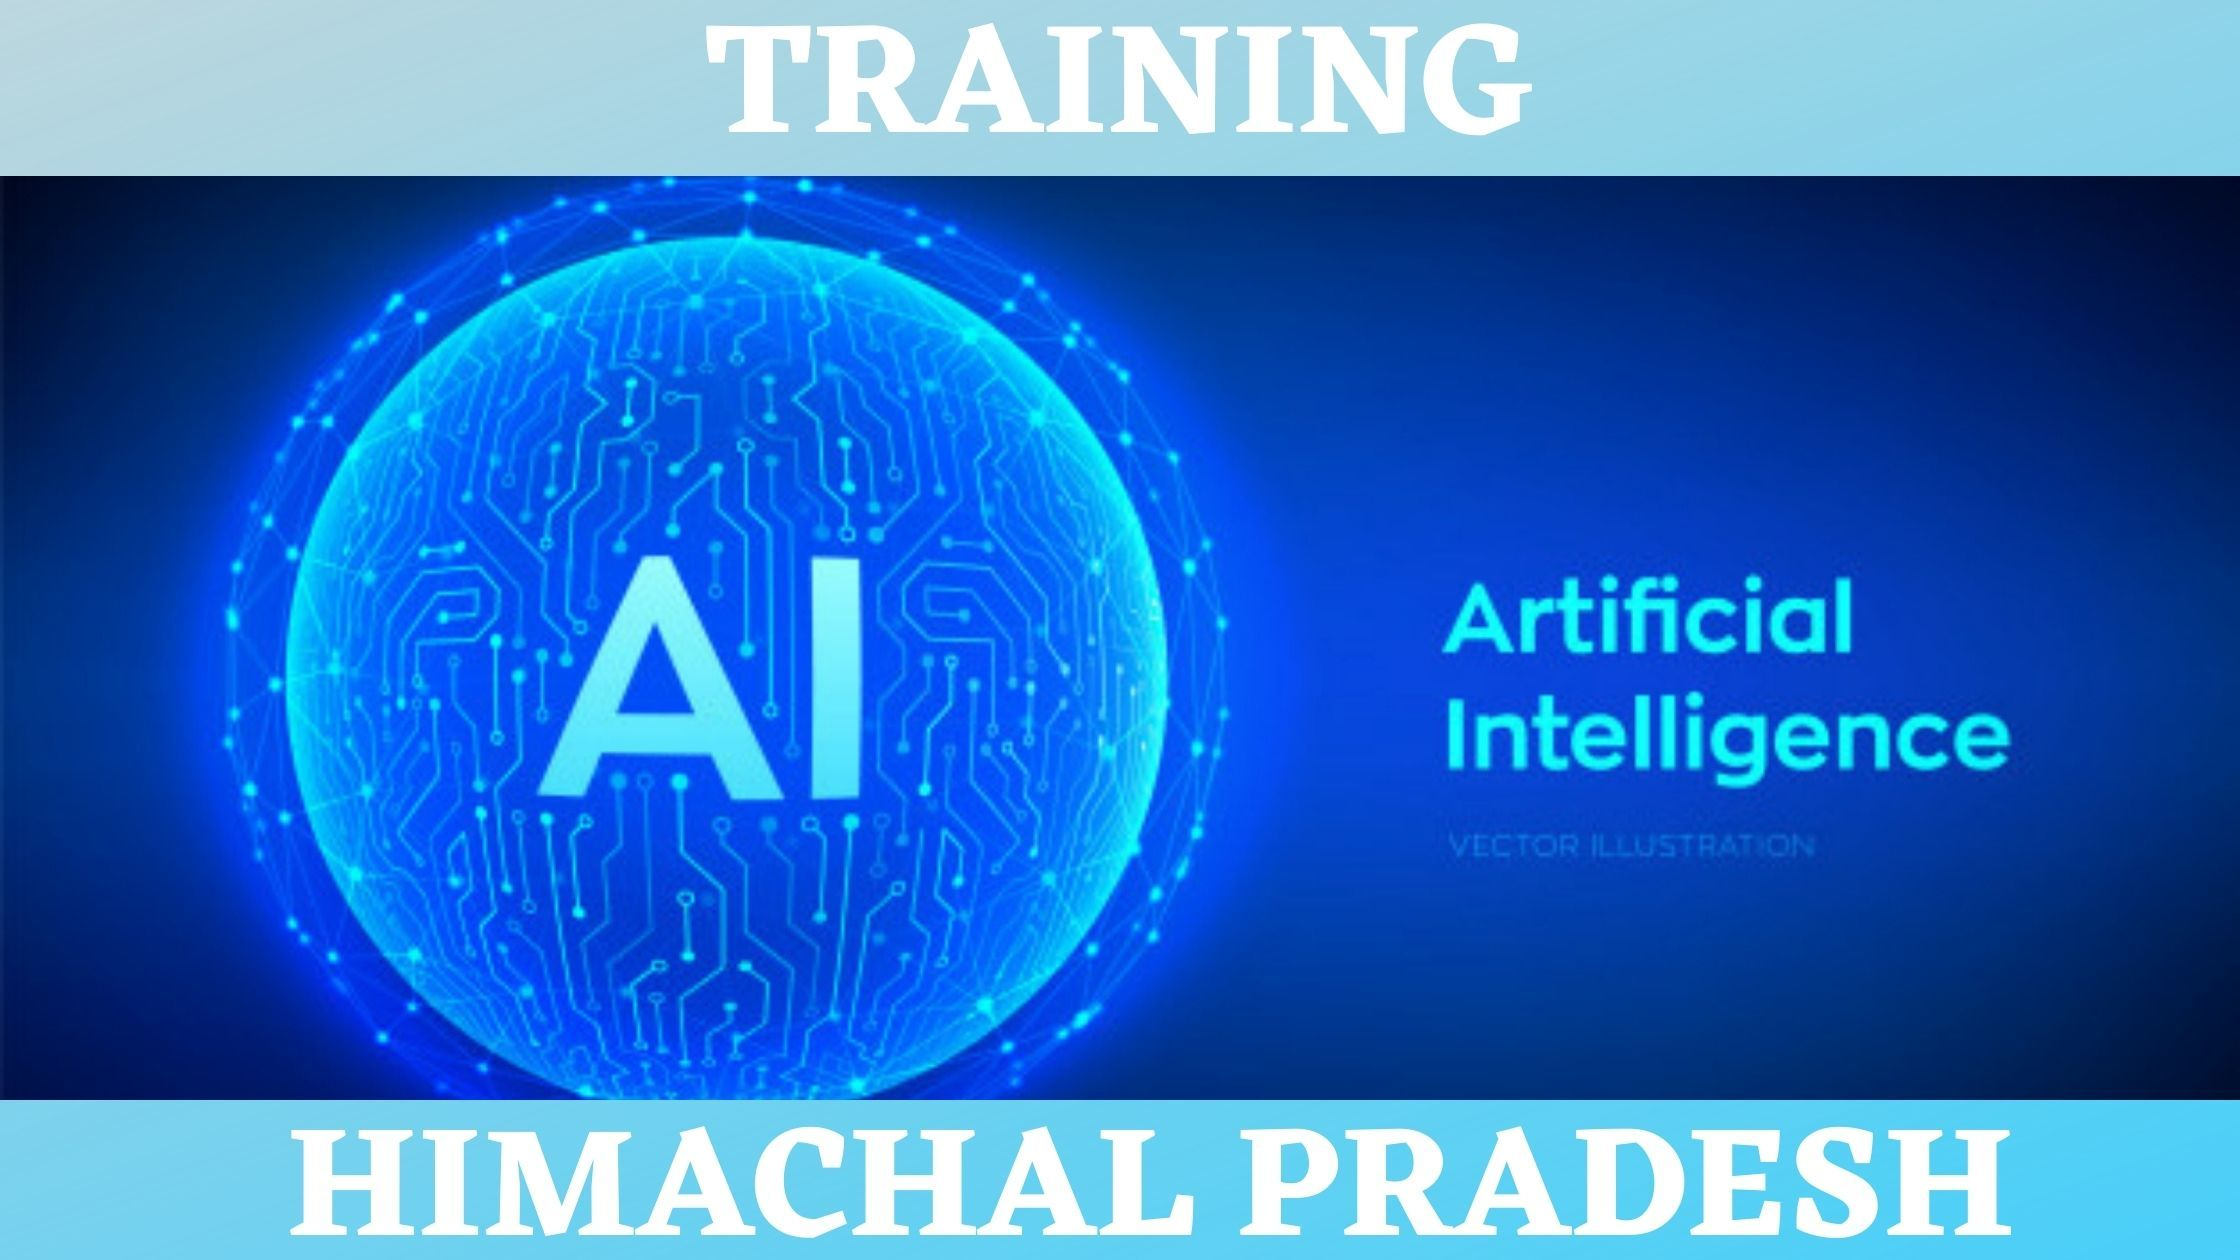 ai_training_in_himachal_pradesh-background.jpeg